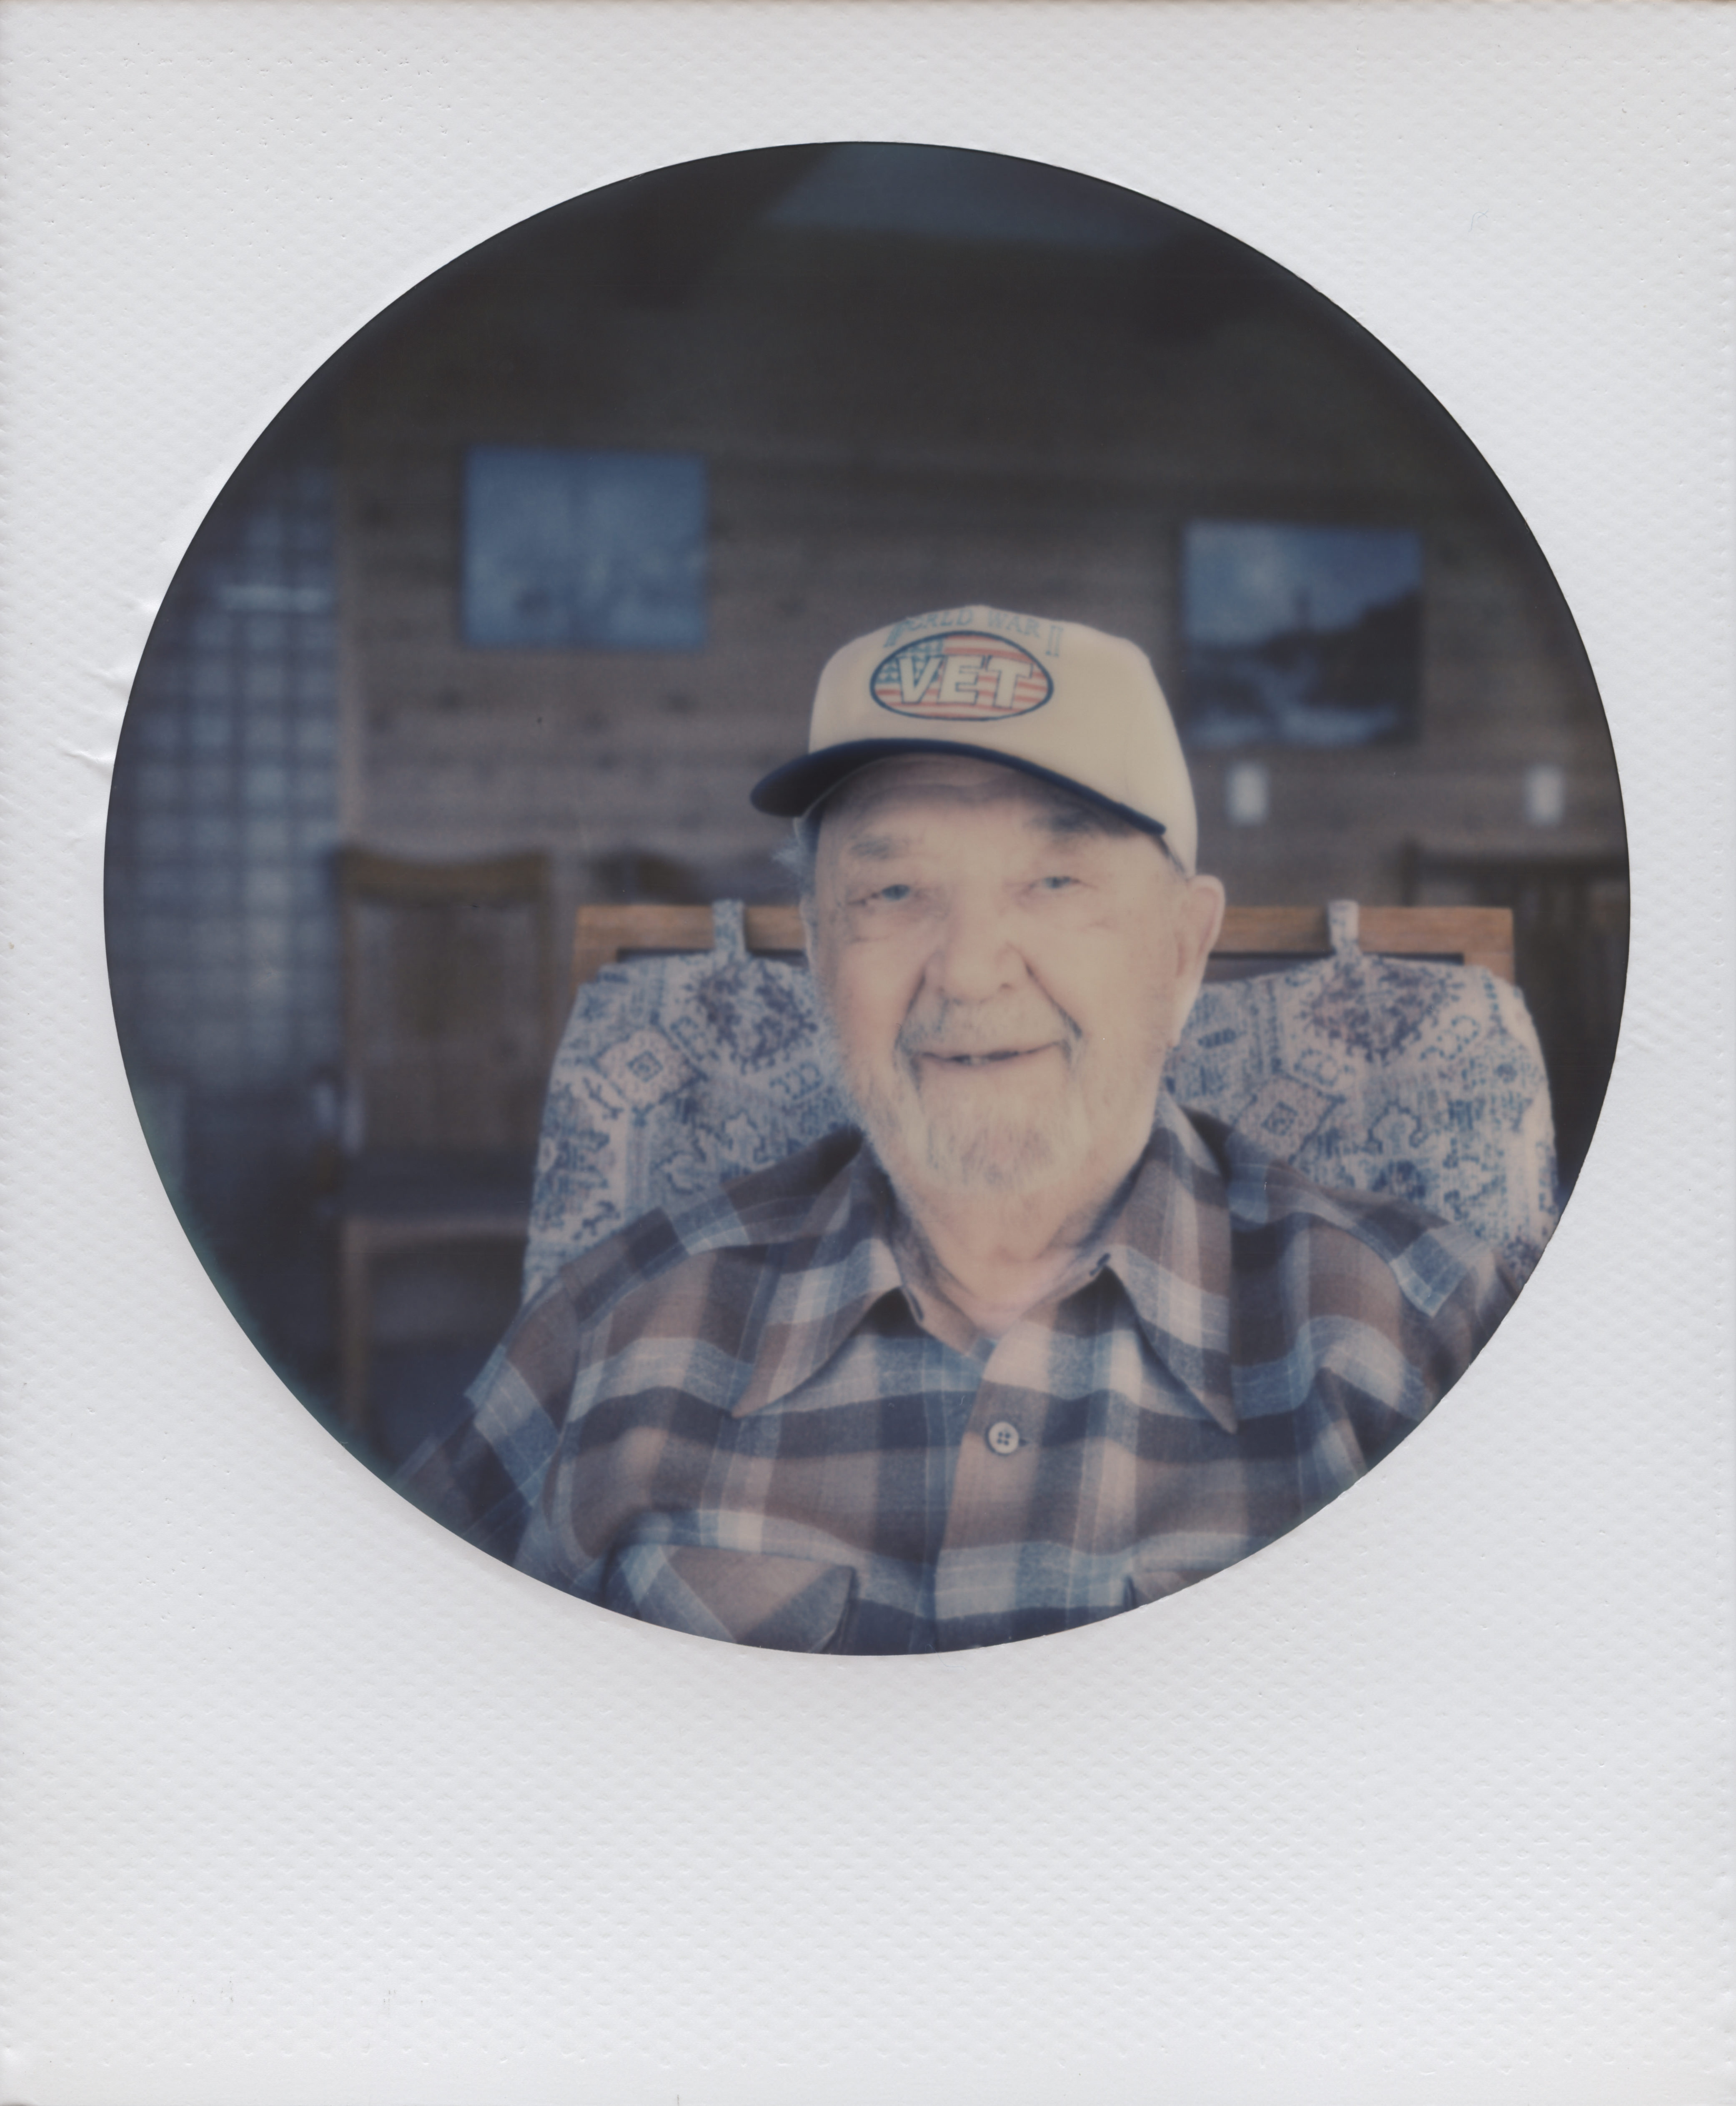 Robert Schoensee on his 99th birthday in Bodega Bay. Polaroid photograph by Briana Morrison